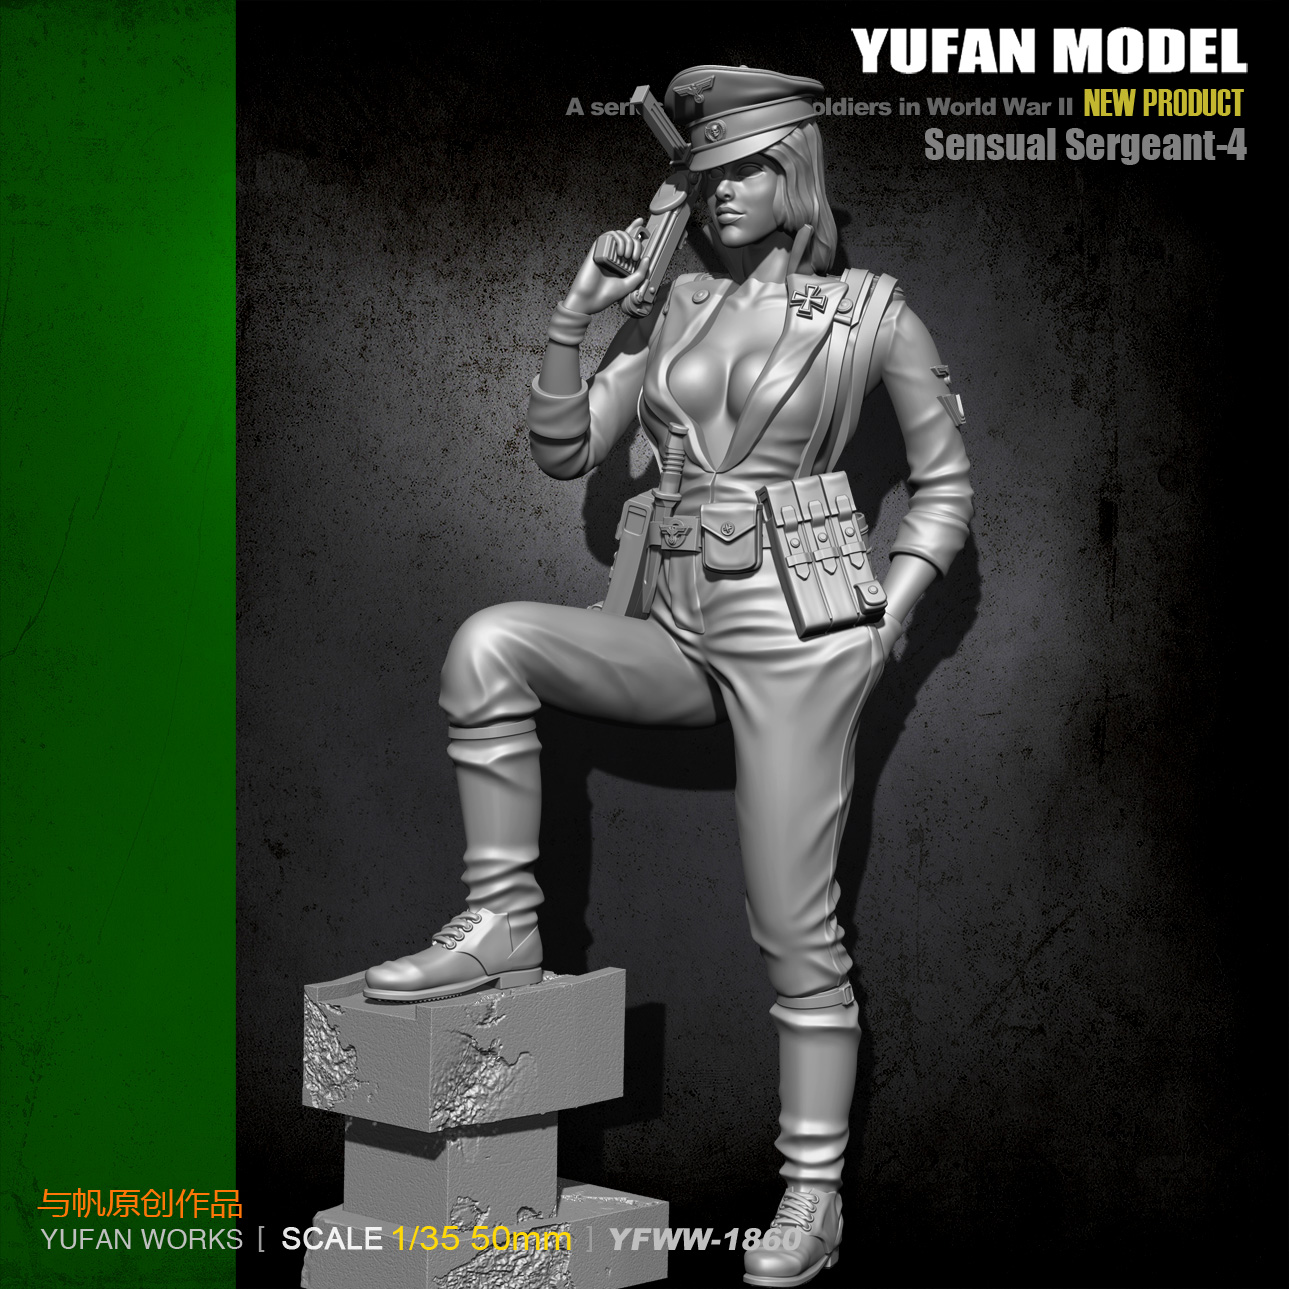 <font><b>1</b></font>/<font><b>35</b></font> <font><b>Resin</b></font> Figure <font><b>Model</b></font> Female <font><b>German</b></font> Soldier Yfww35-1860 image